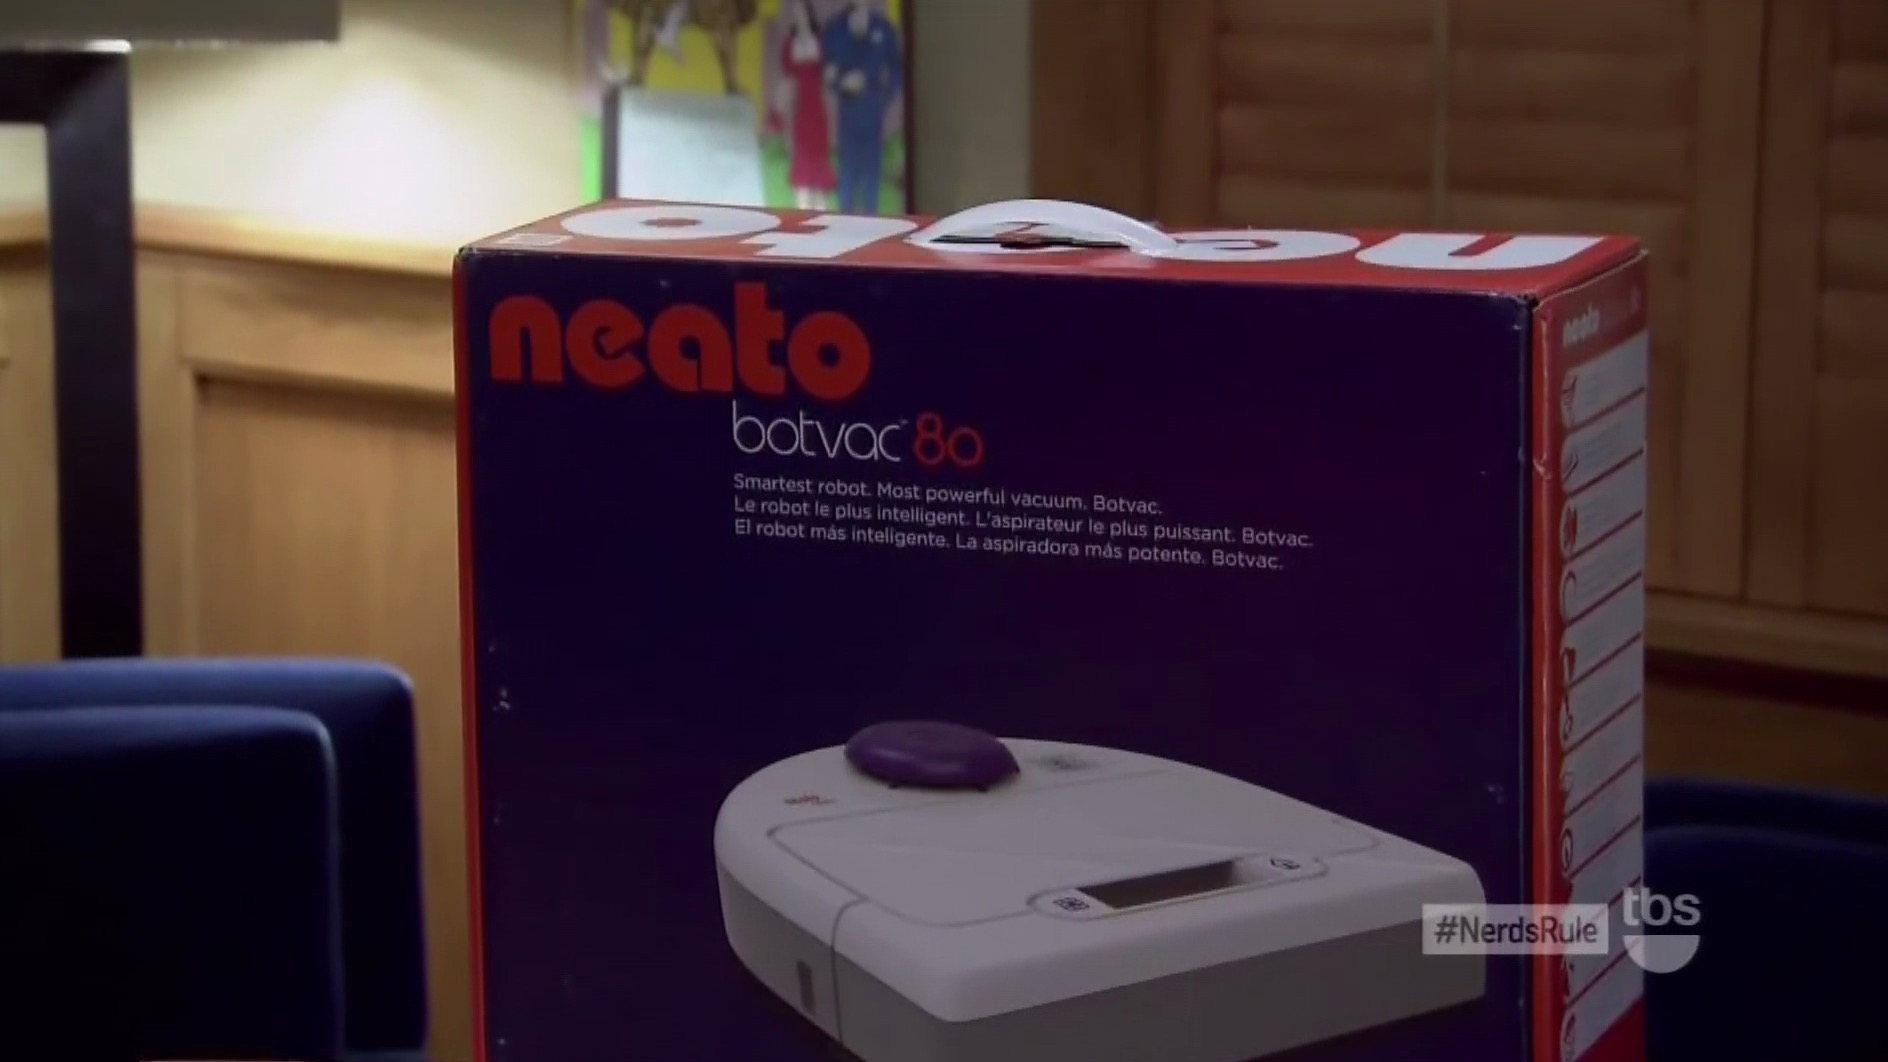 Neato • King of the Nerds